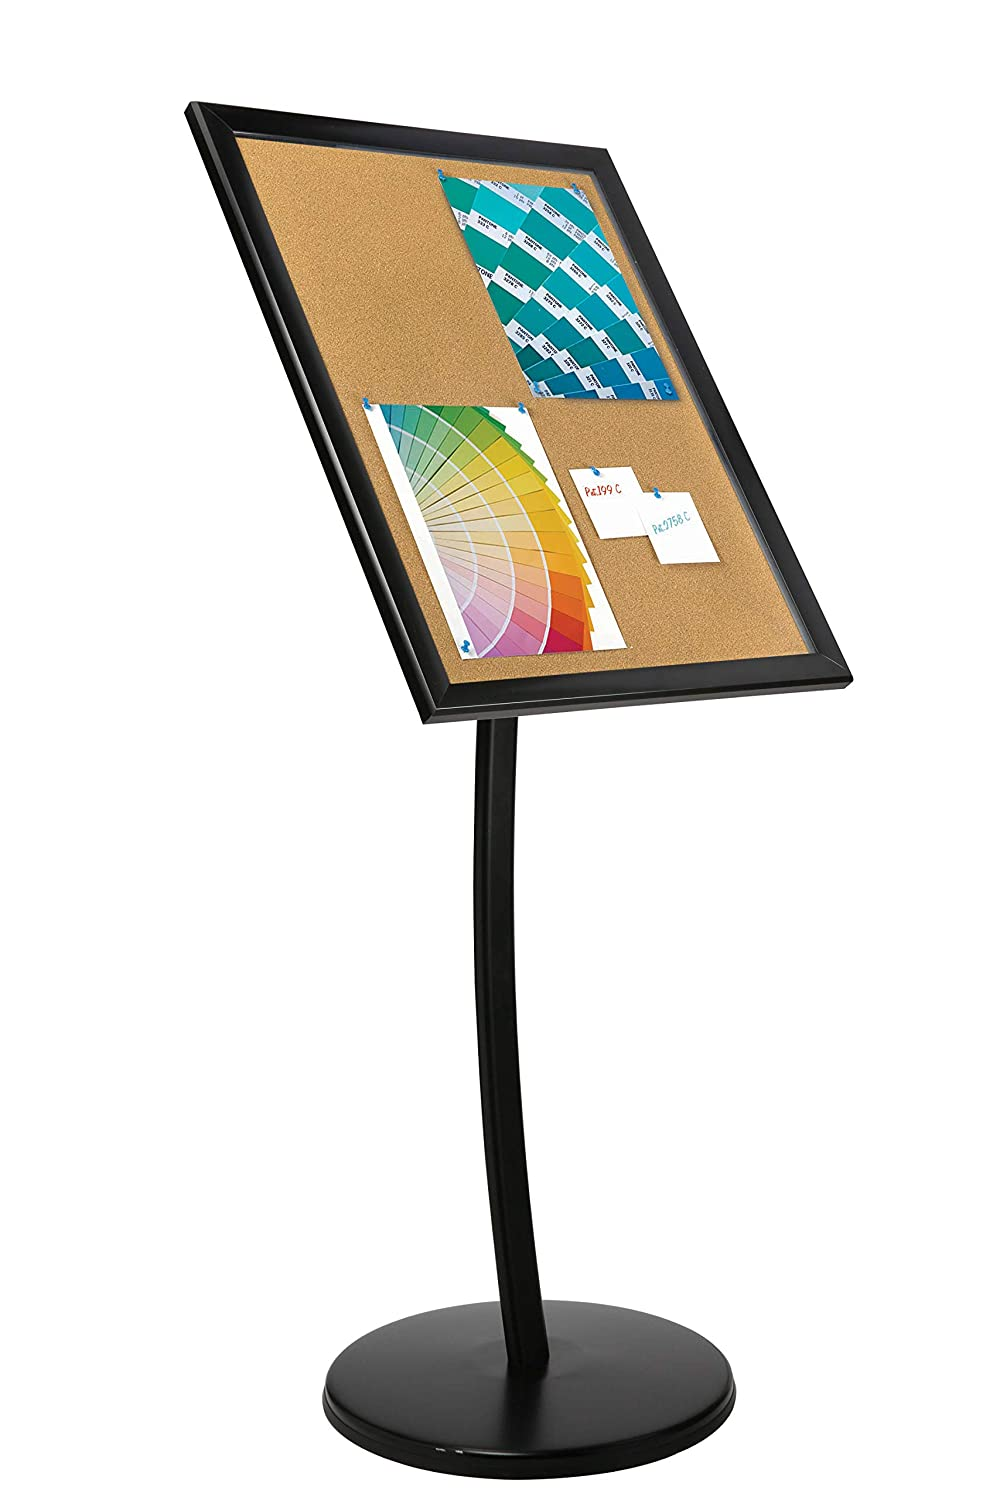 Outdoor Enclosed Advertising Menu Display with Cork Board on Curved Floor Post, Locking, Warranty (22x28, Magnetic) MT Displays